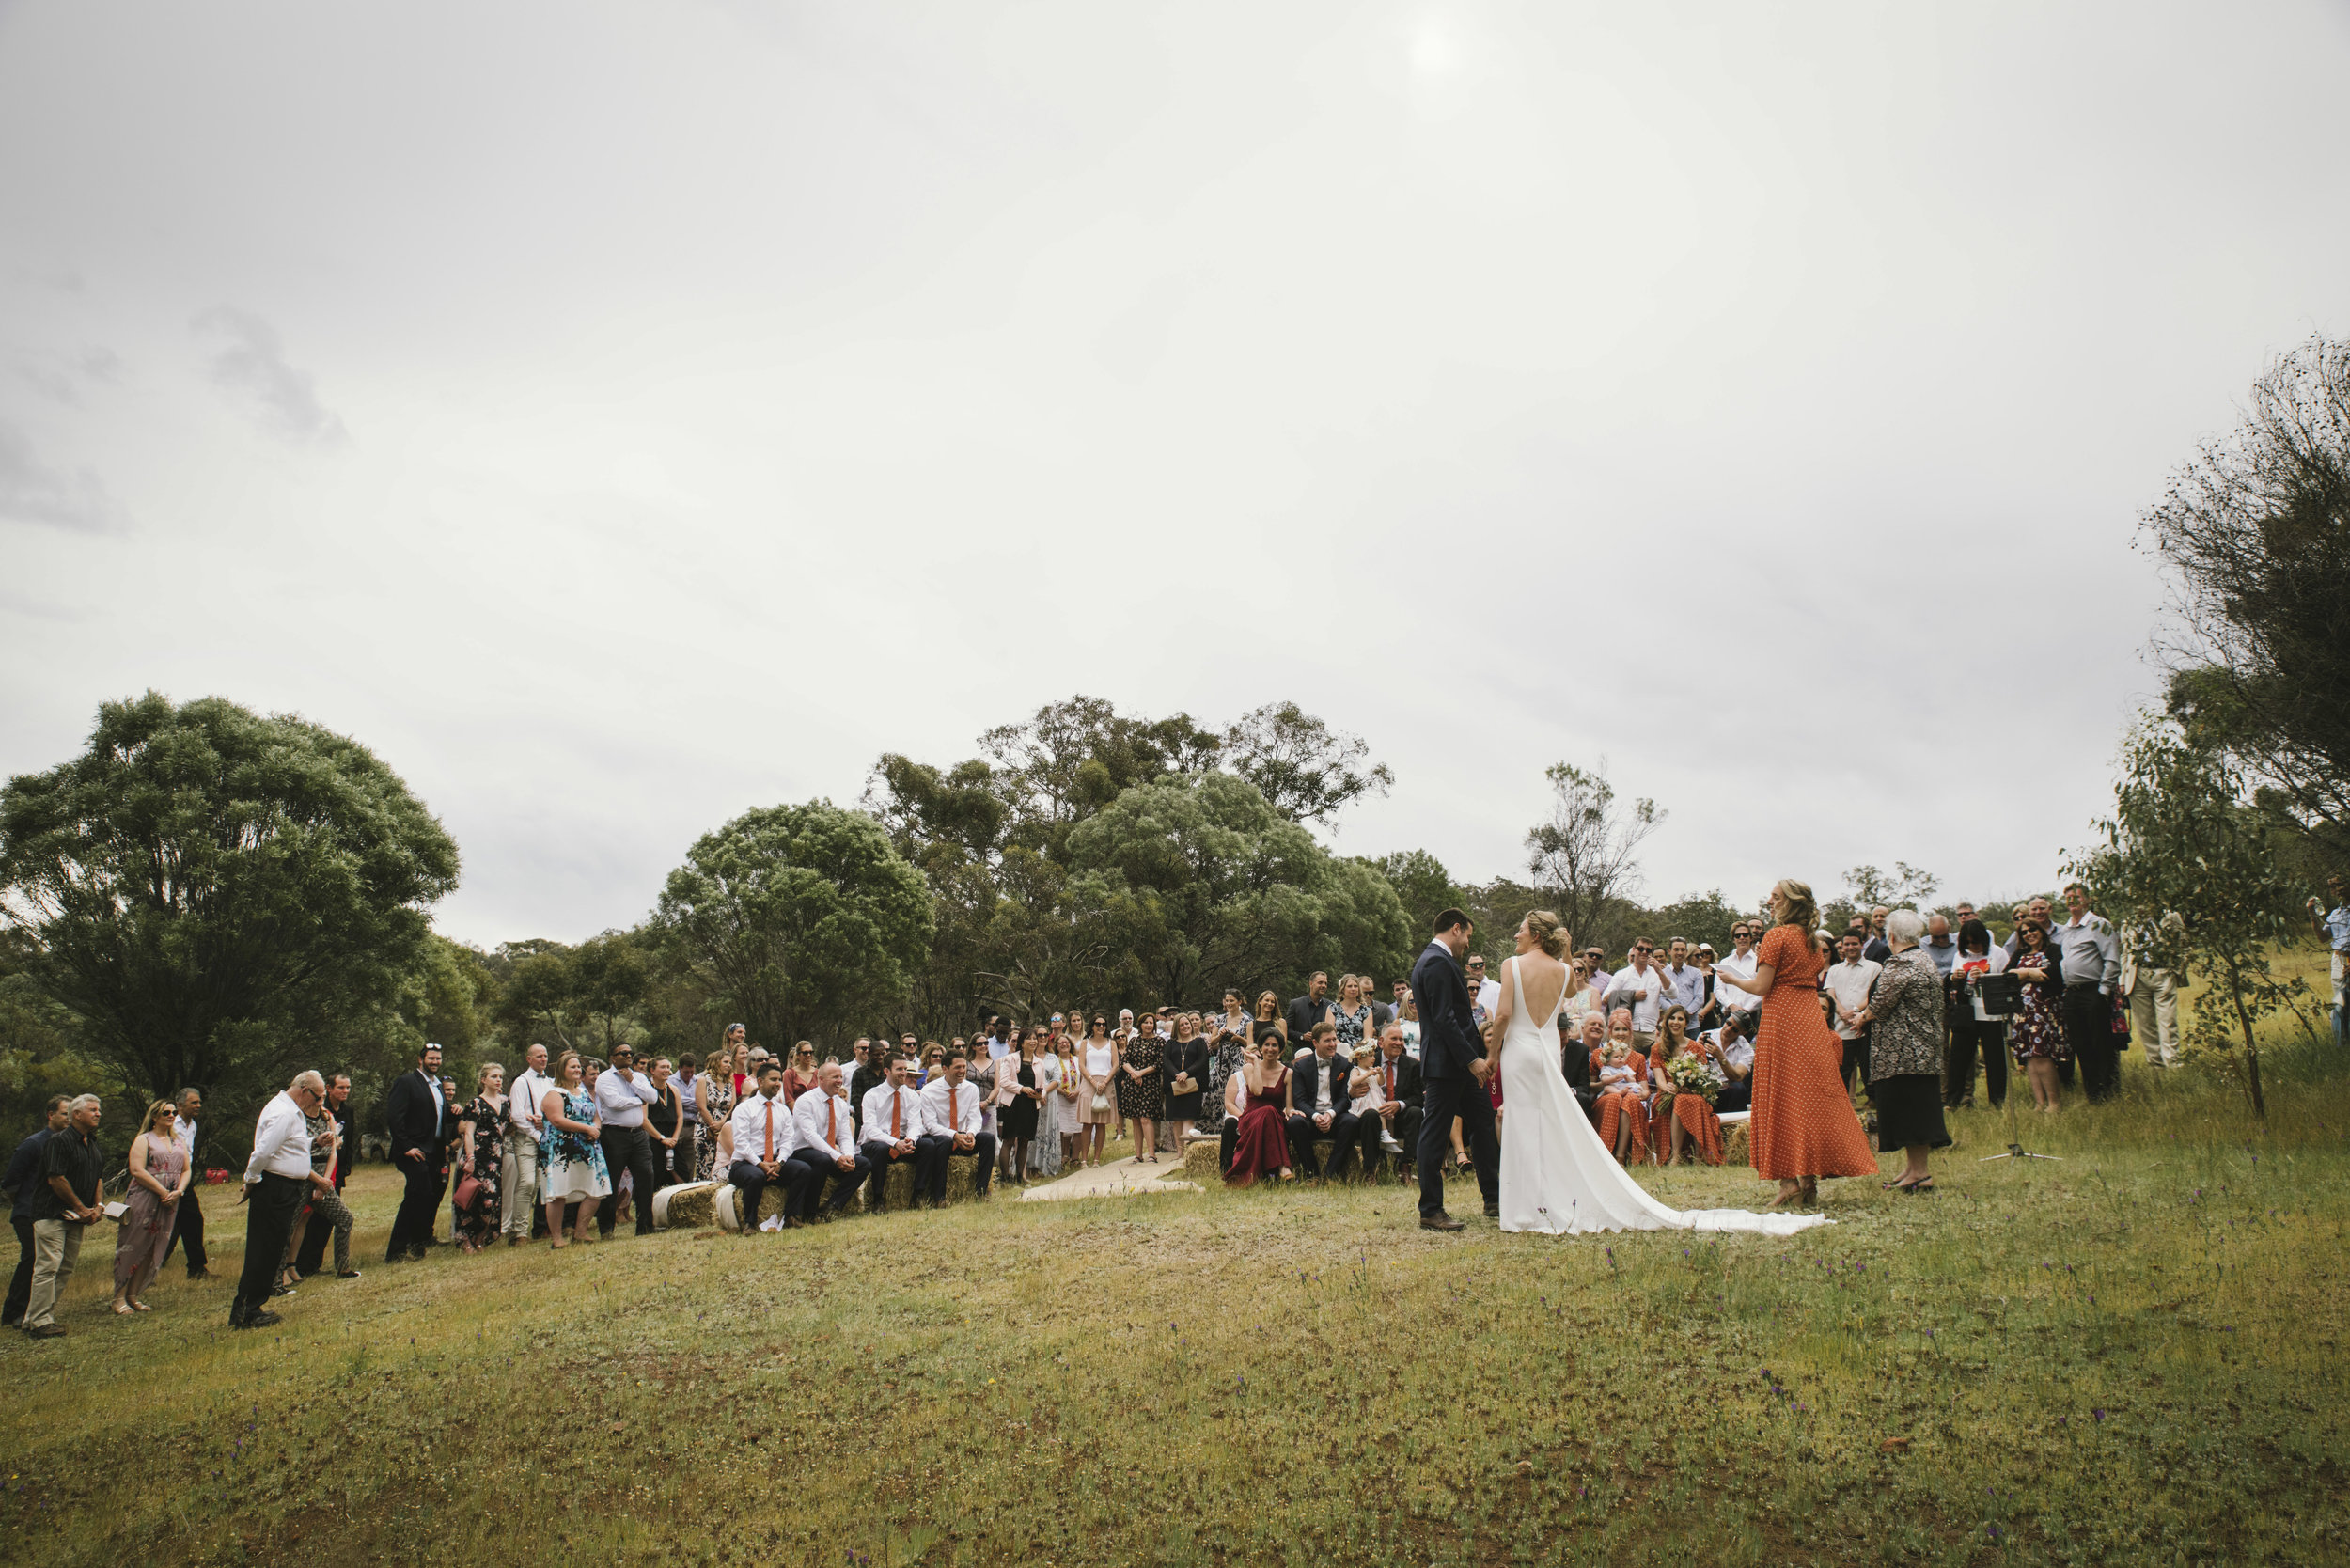 Avon Valley Toodyay Rustic Rural Festival Wedding  (39).jpg